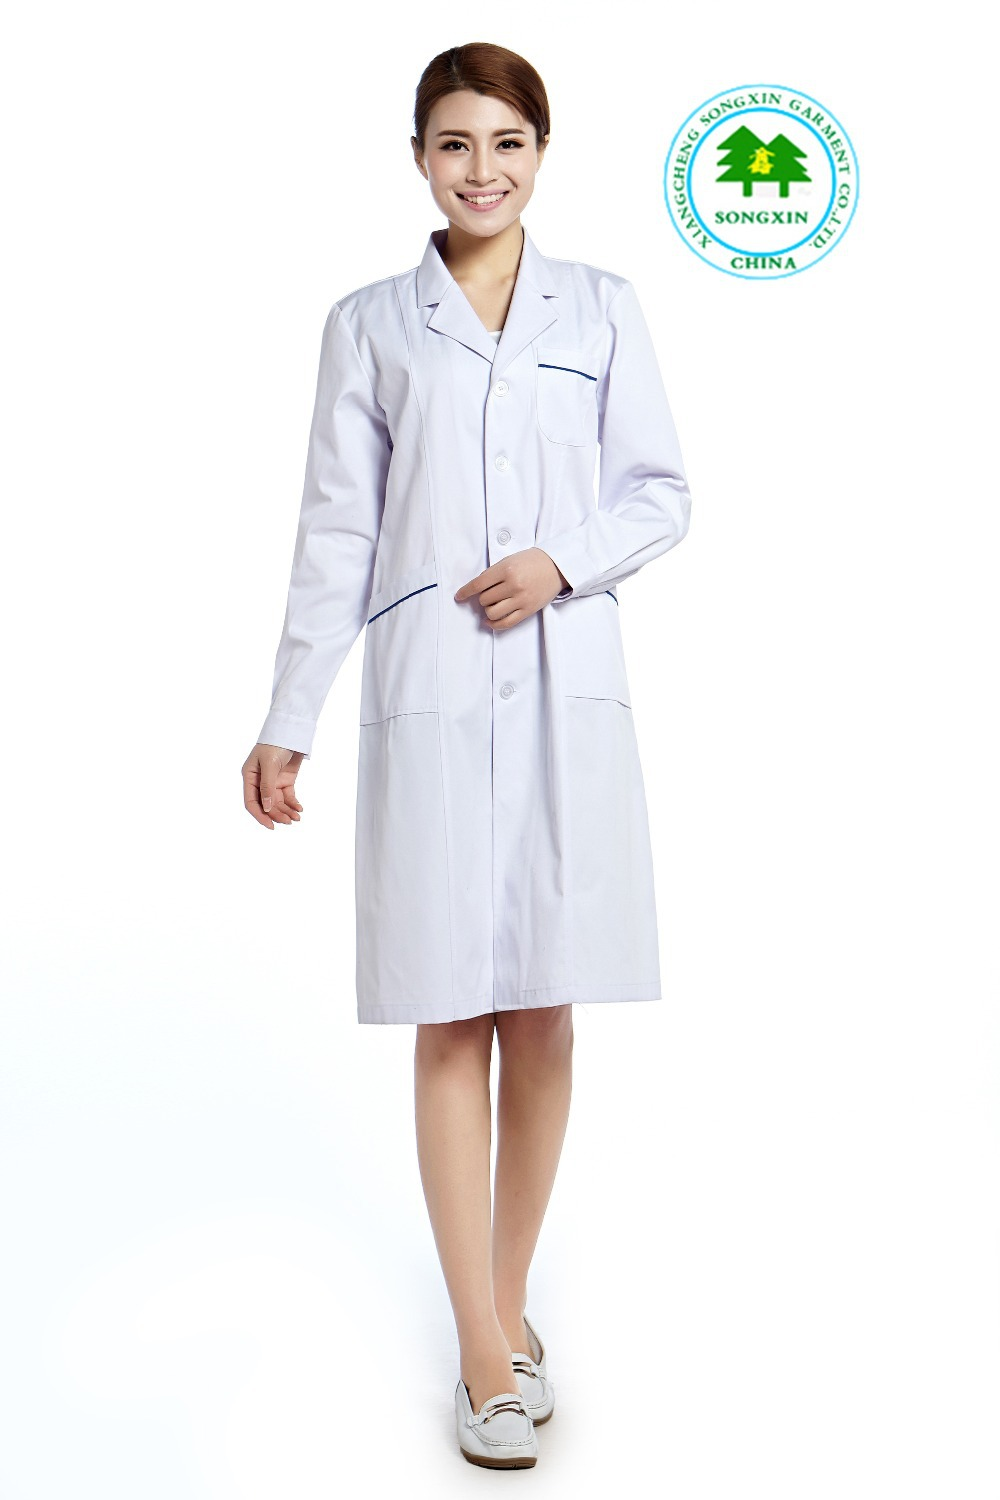 Compare Prices on Doctor Coats- Online Shopping/Buy Low Price ...